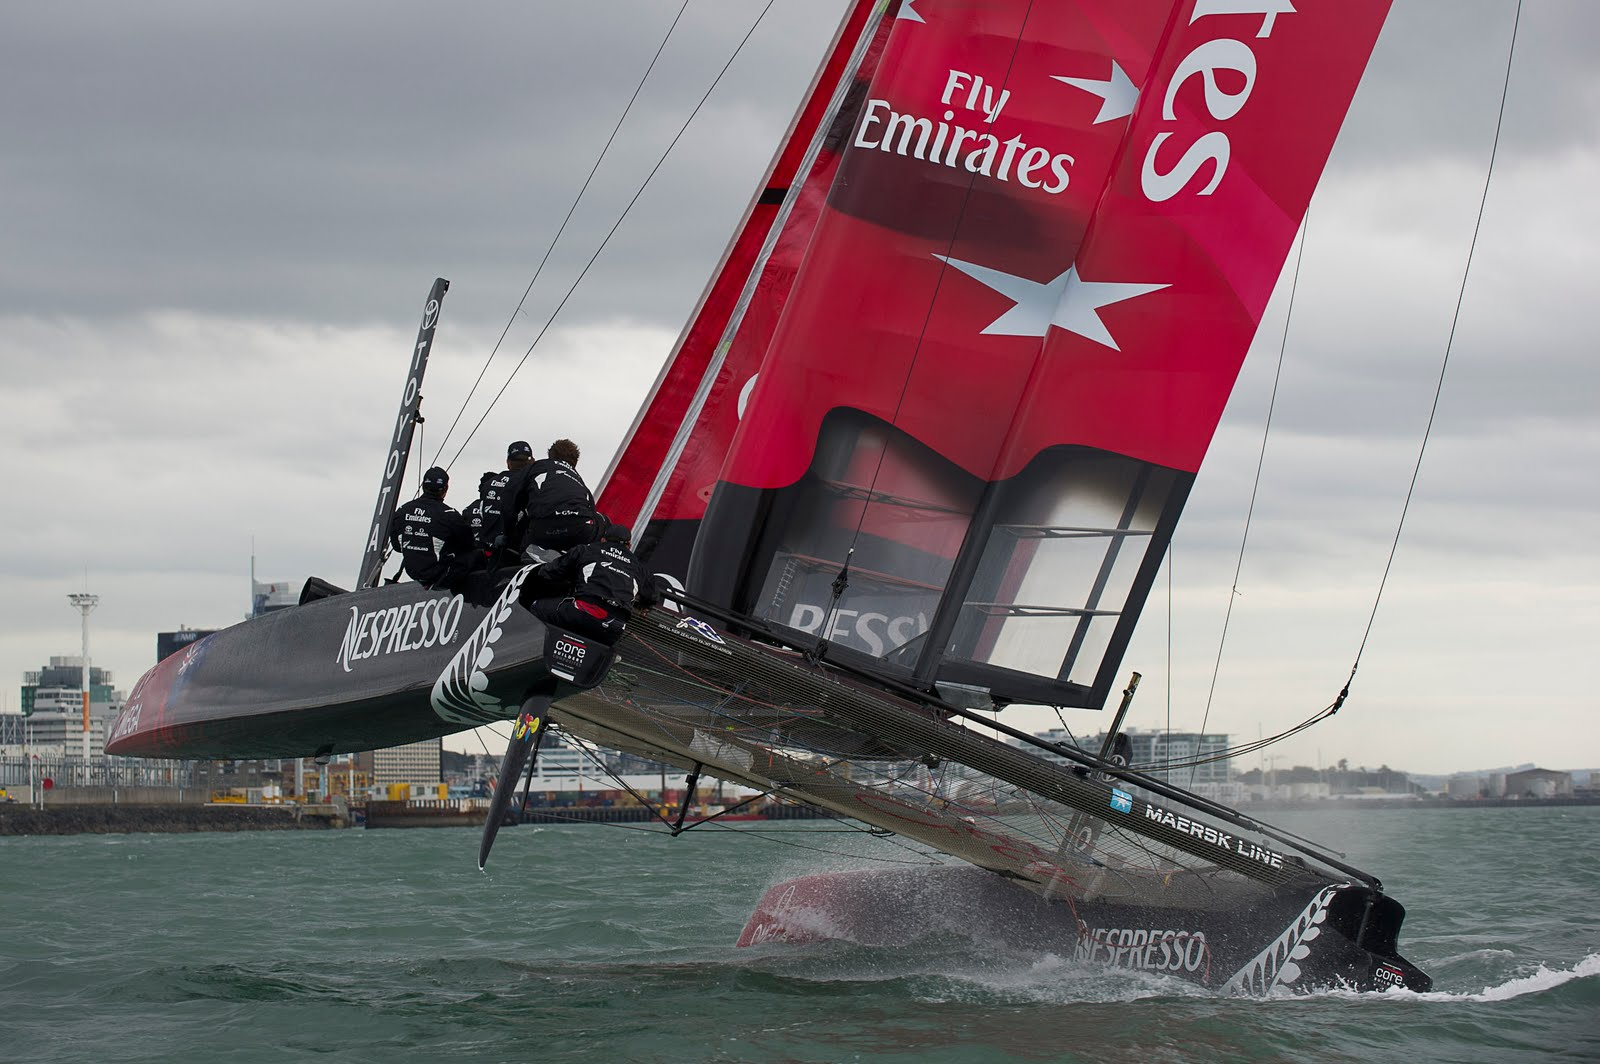 The Emirates Team NZ yacht with her new livery. Auckland, 2 June 2011.